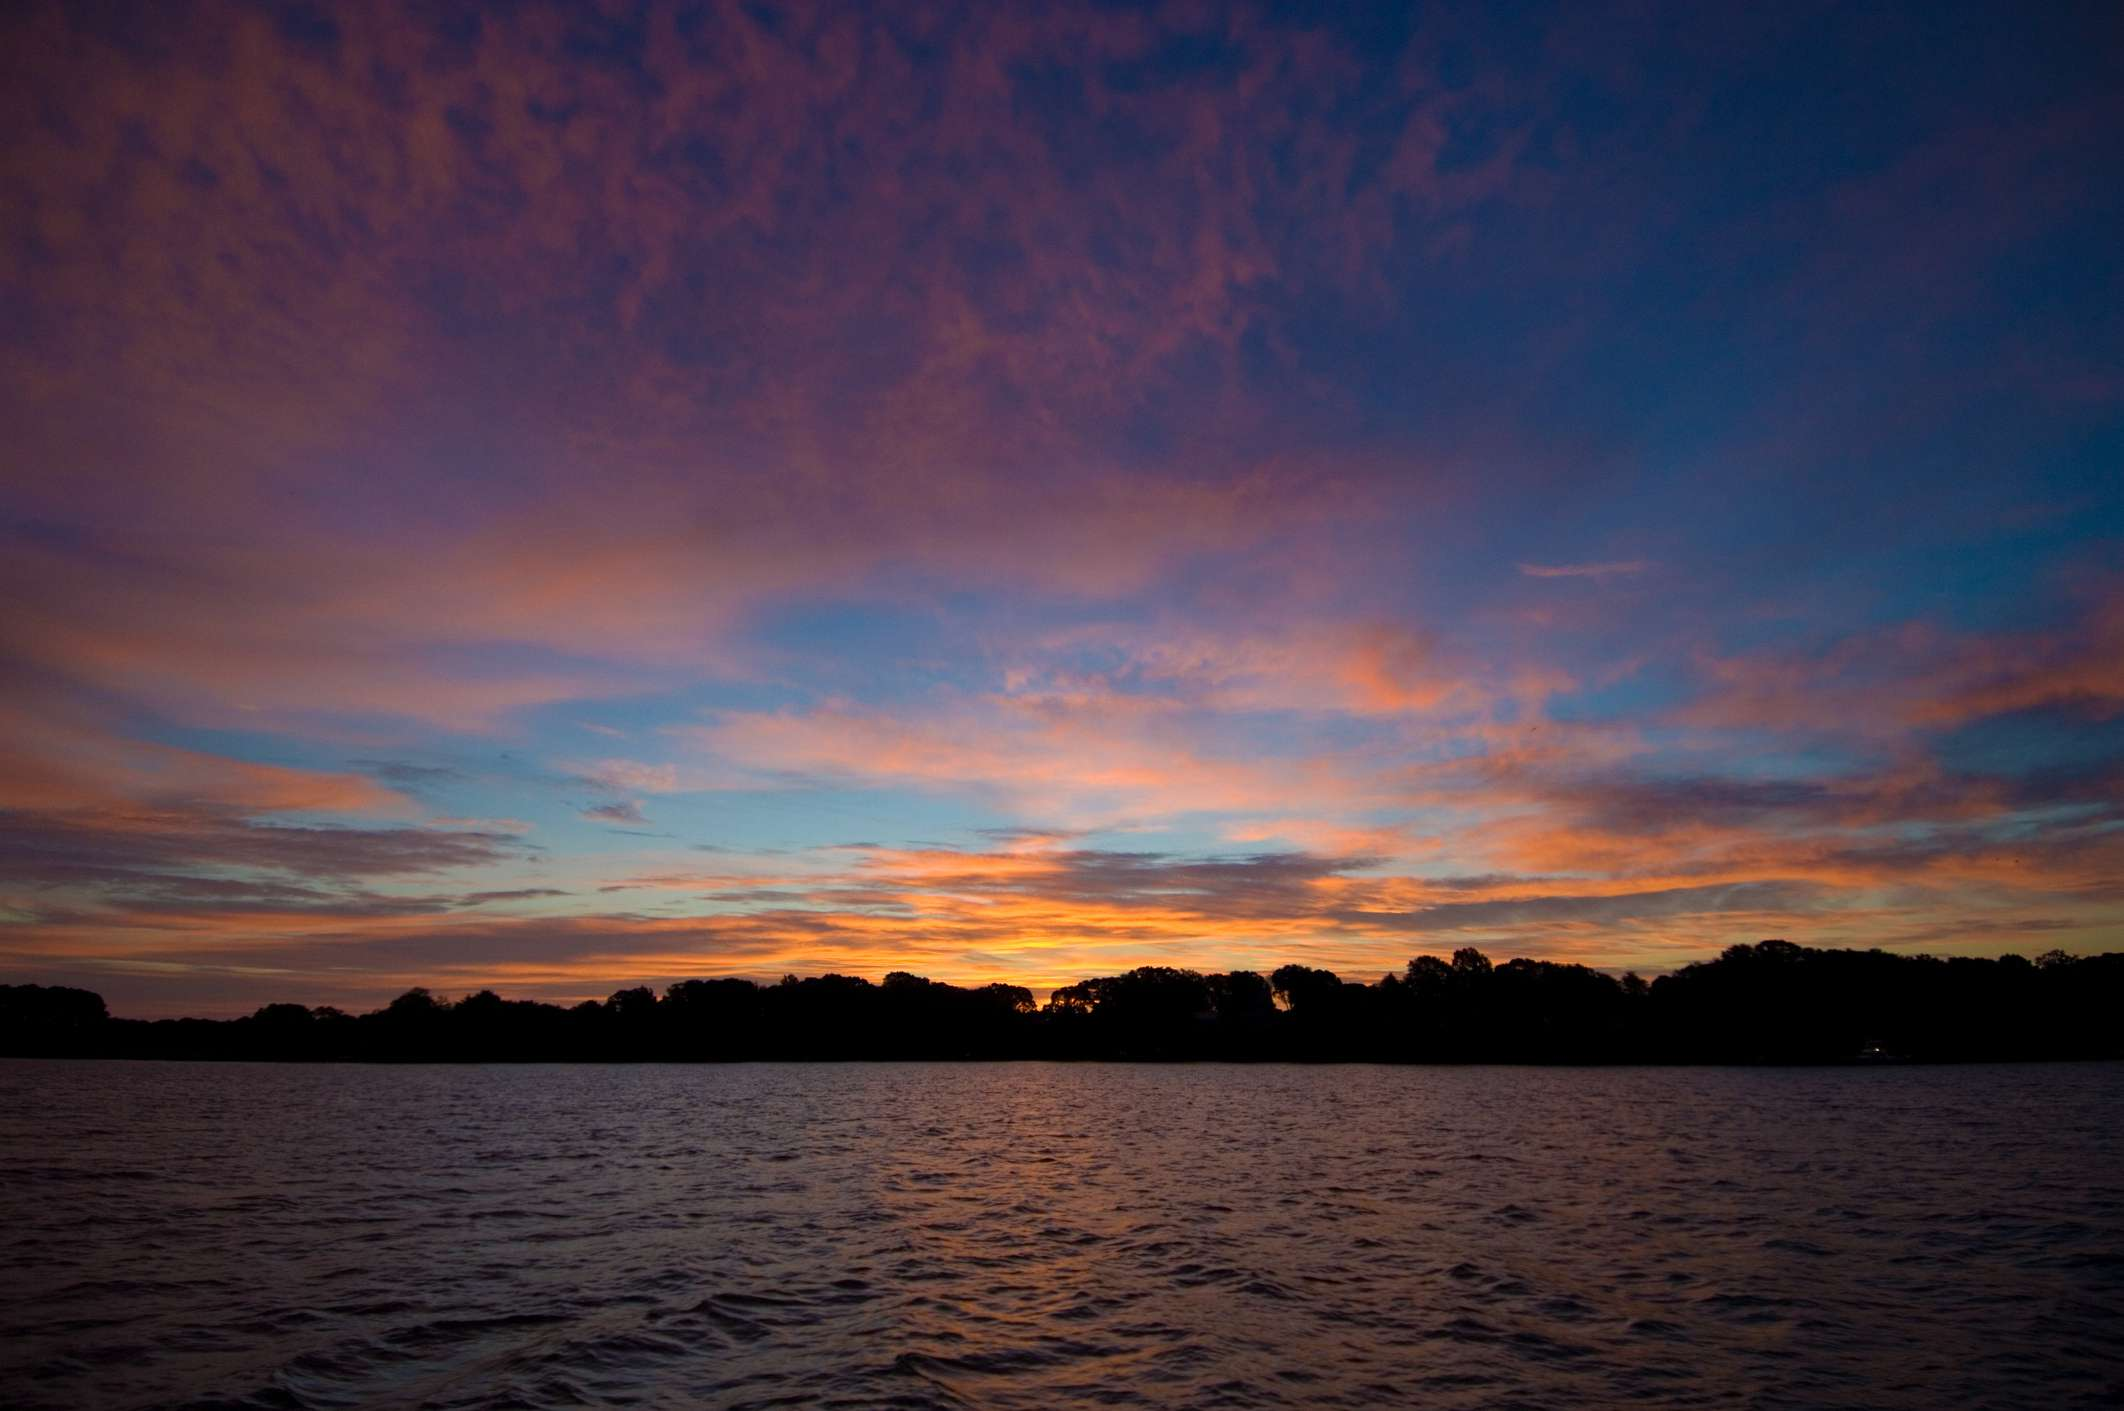 Dawn on the Chester River, Chestertown, Maryland